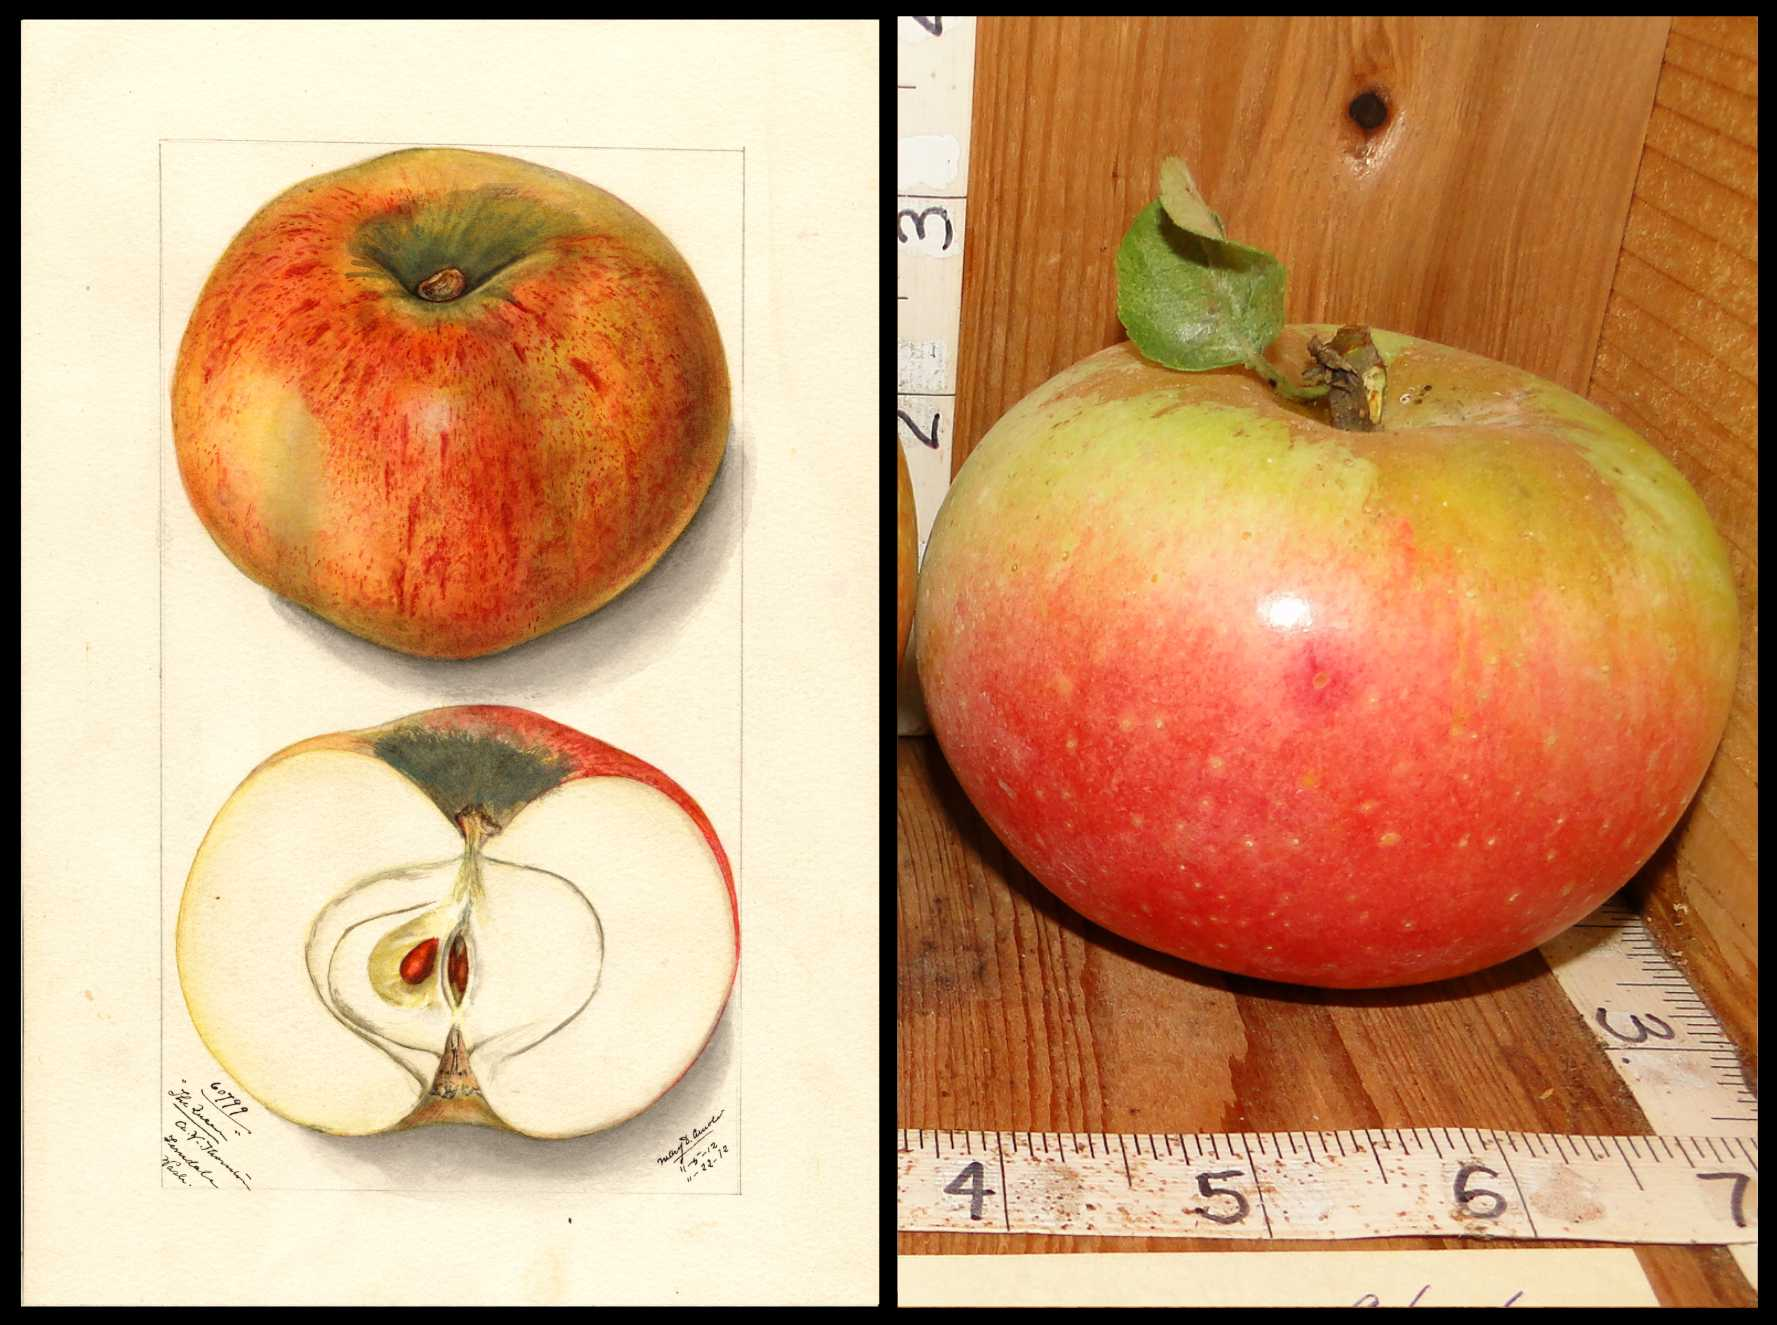 yellow apple with widespread red blush and rough tan skin around the stem